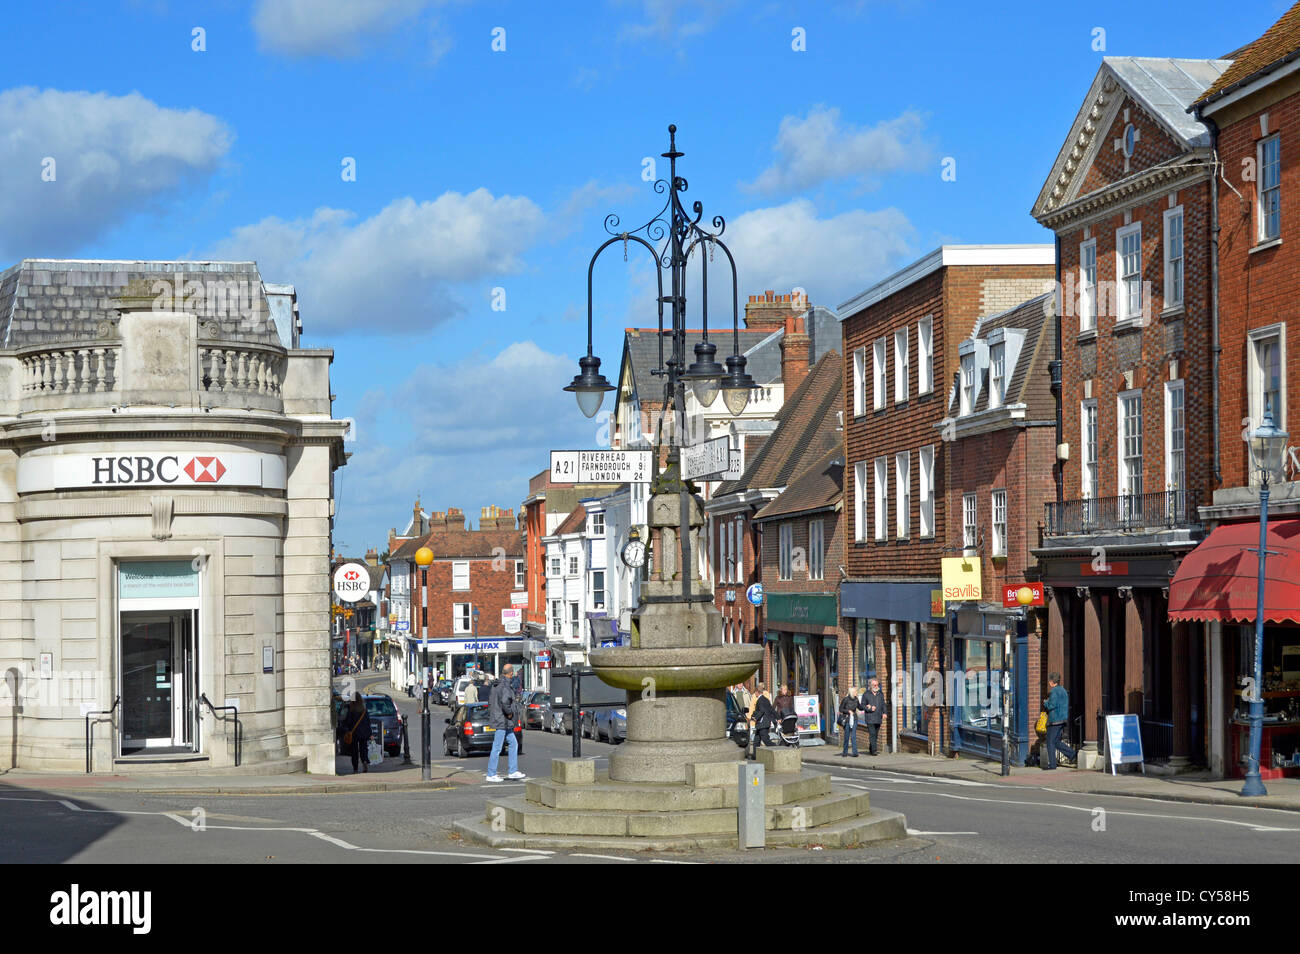 Fountain and signposts at junction of London Road and Sevenoaks shopping High Street with HSBC bank branch Kent - Stock Image